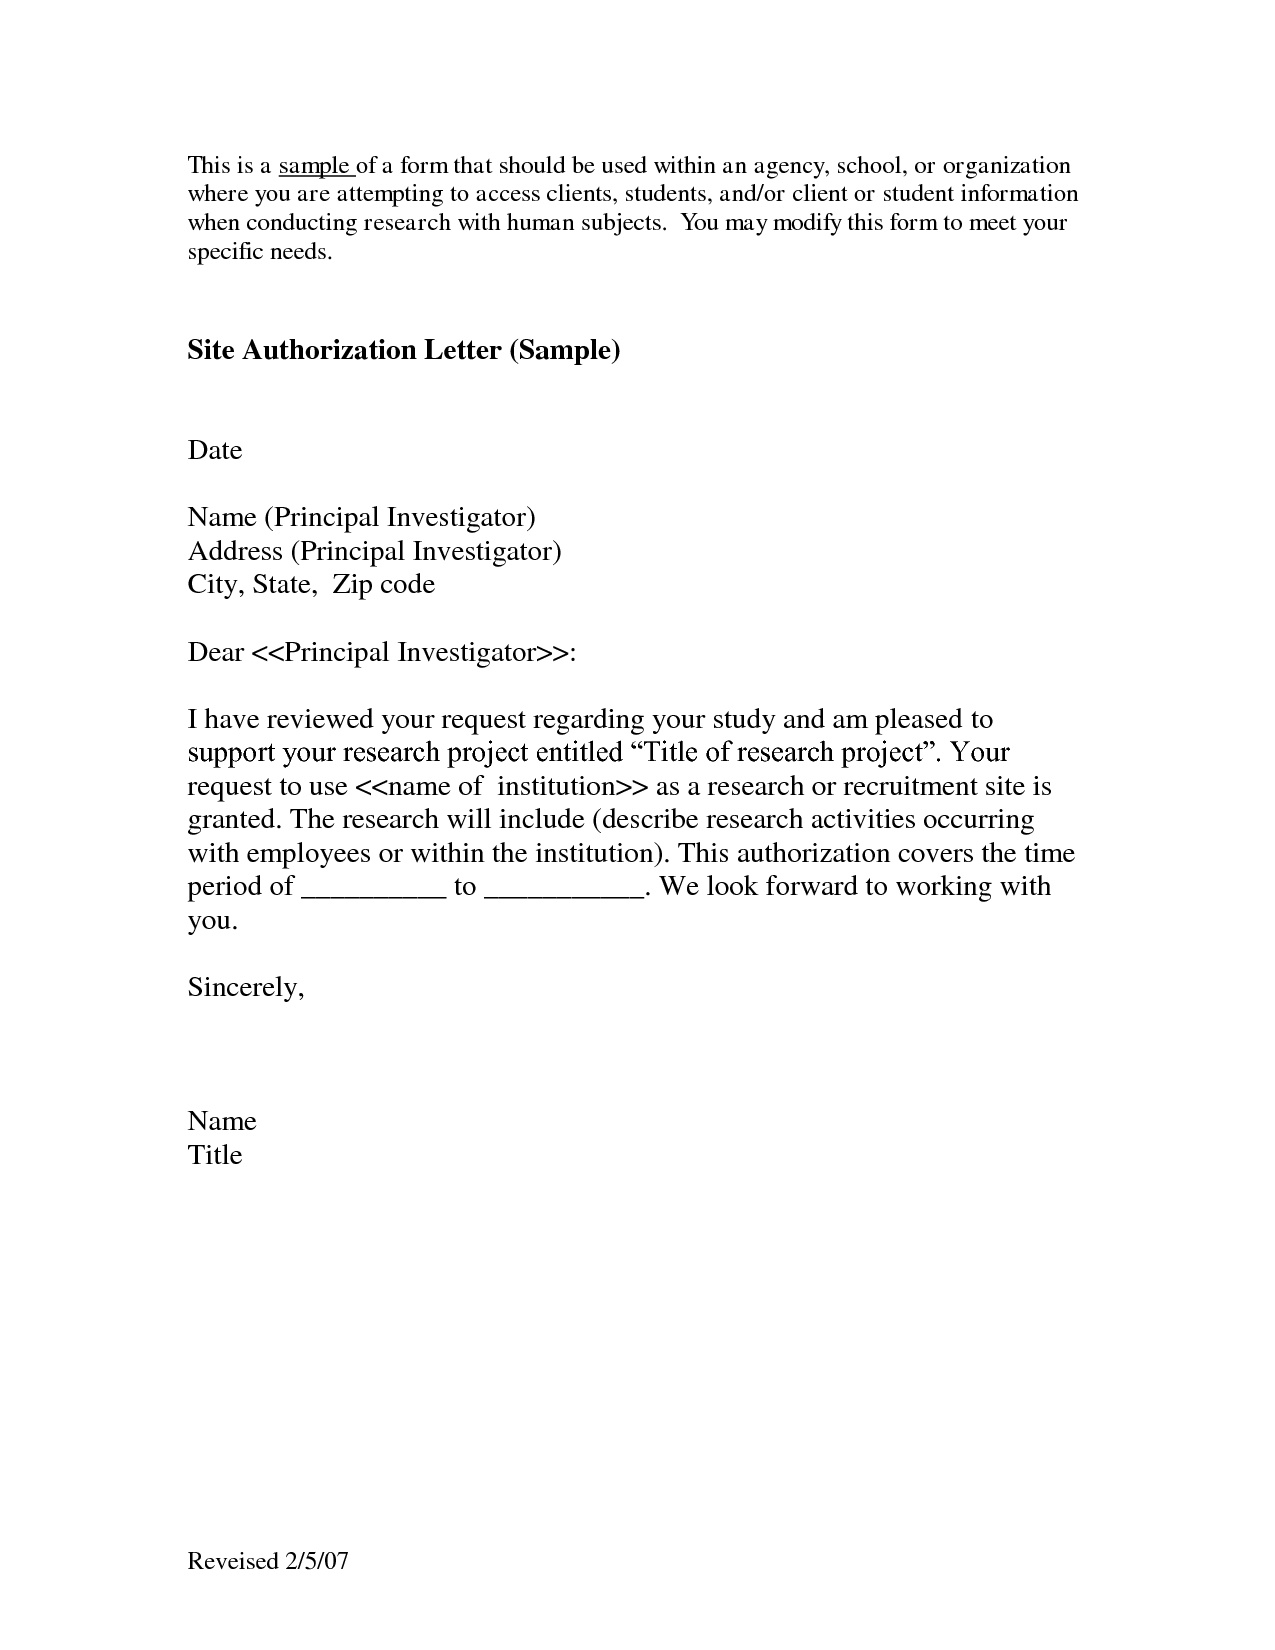 Public Record Removal Letter Template - Tender Authorization Letter Authorization Letter to Purchase